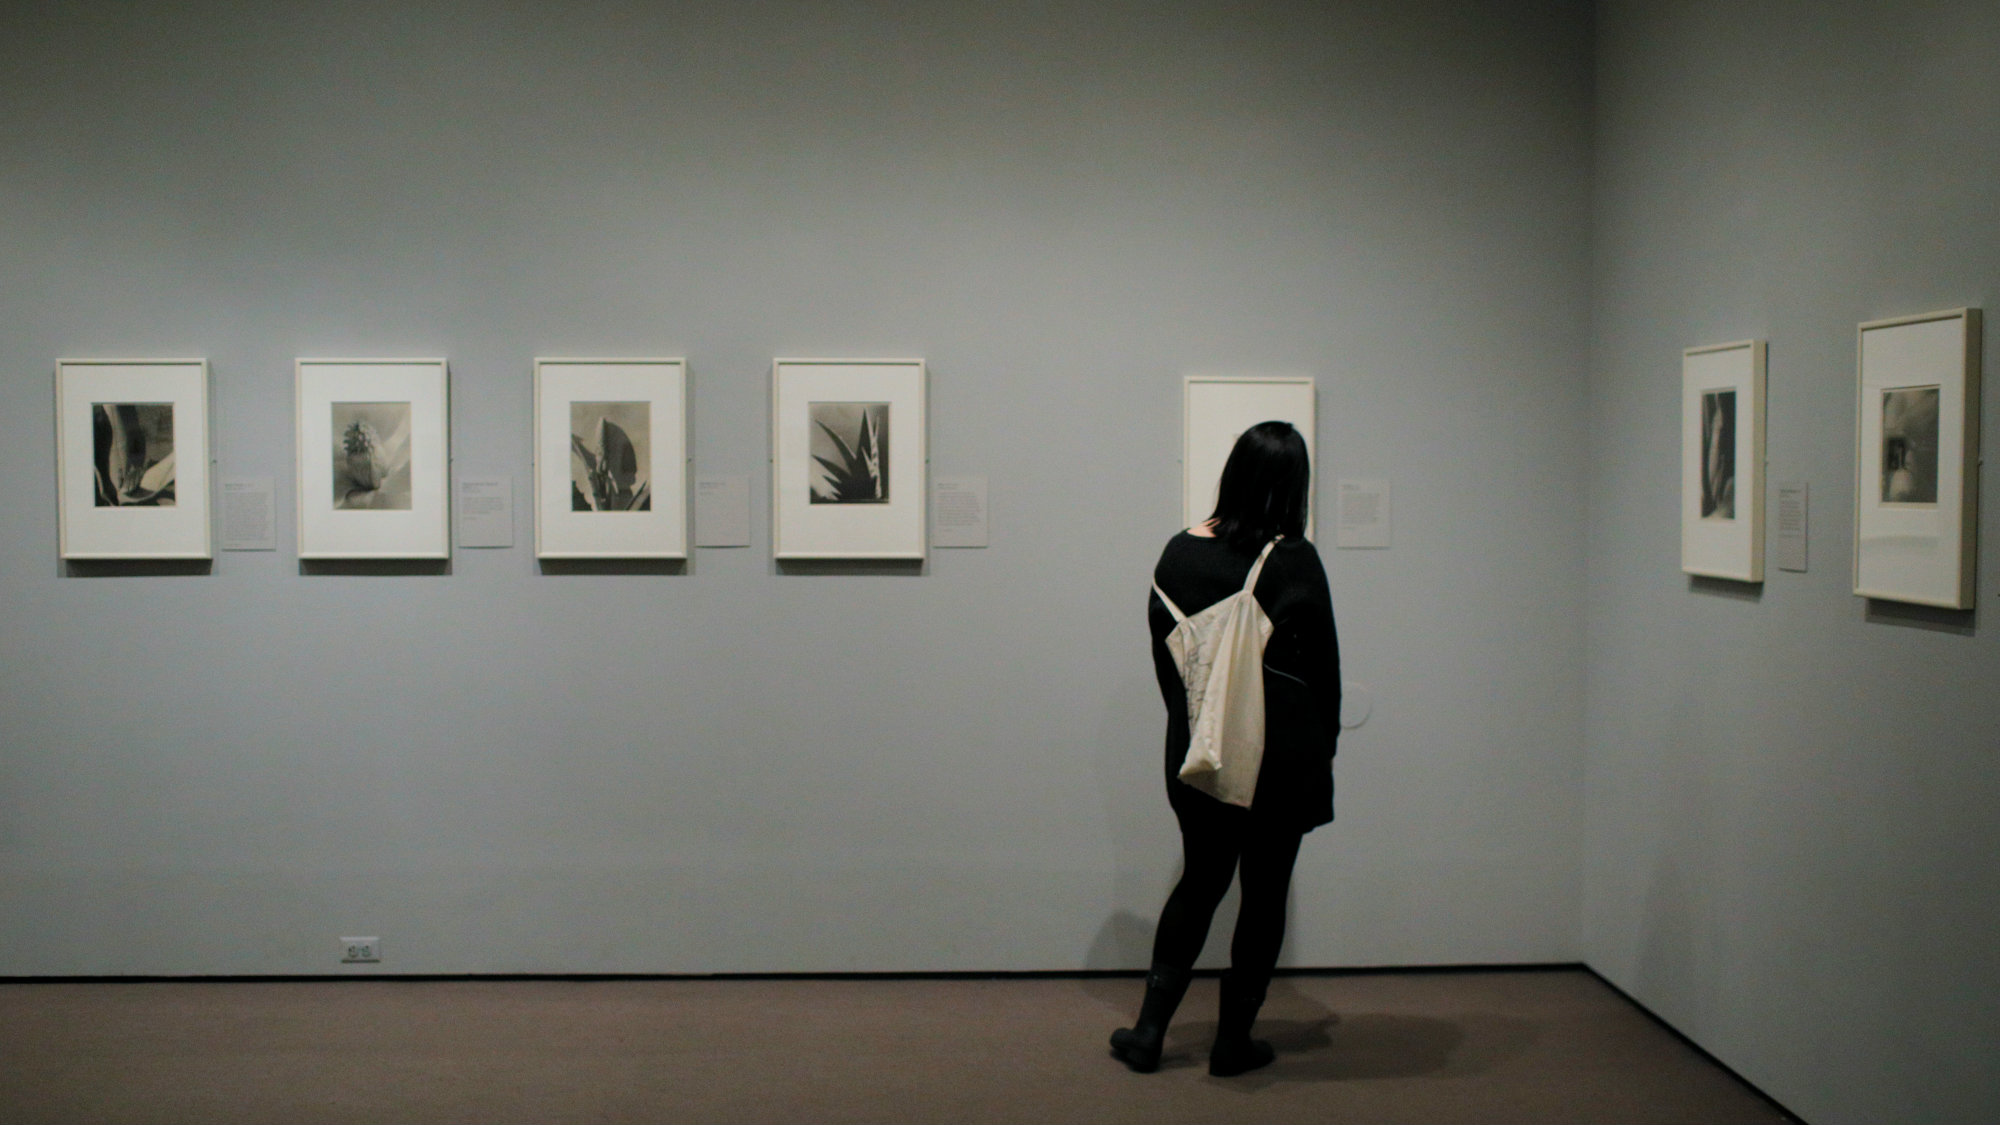 """A visitor looks at the exhibit """"Imogen Cunningham: In Focus"""" at the Museum of Fine Arts, Boston, in Boston, Massachusetts, U.S., April 26, 2017."""